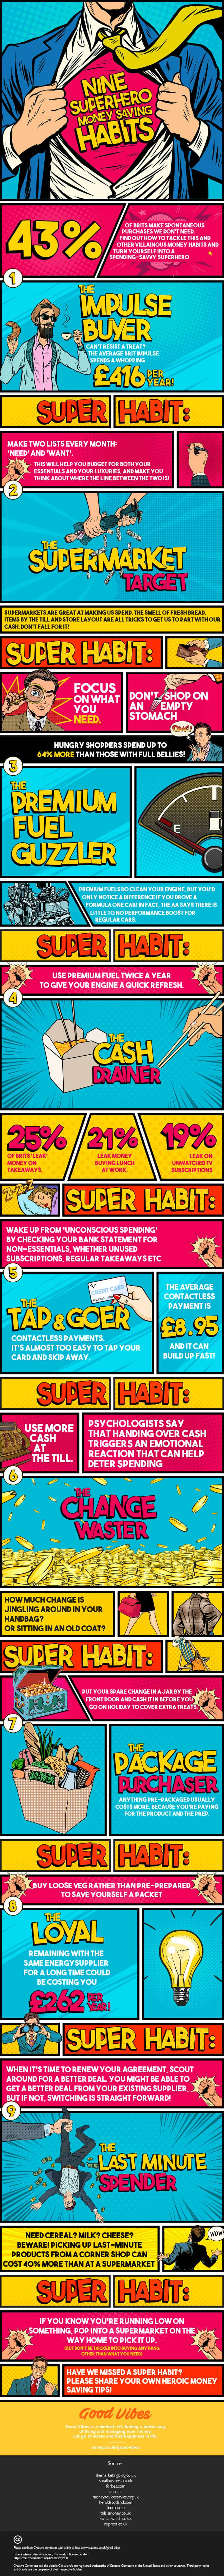 SUNNY SUPERHERO HABITS INFOGRAPHIC 1